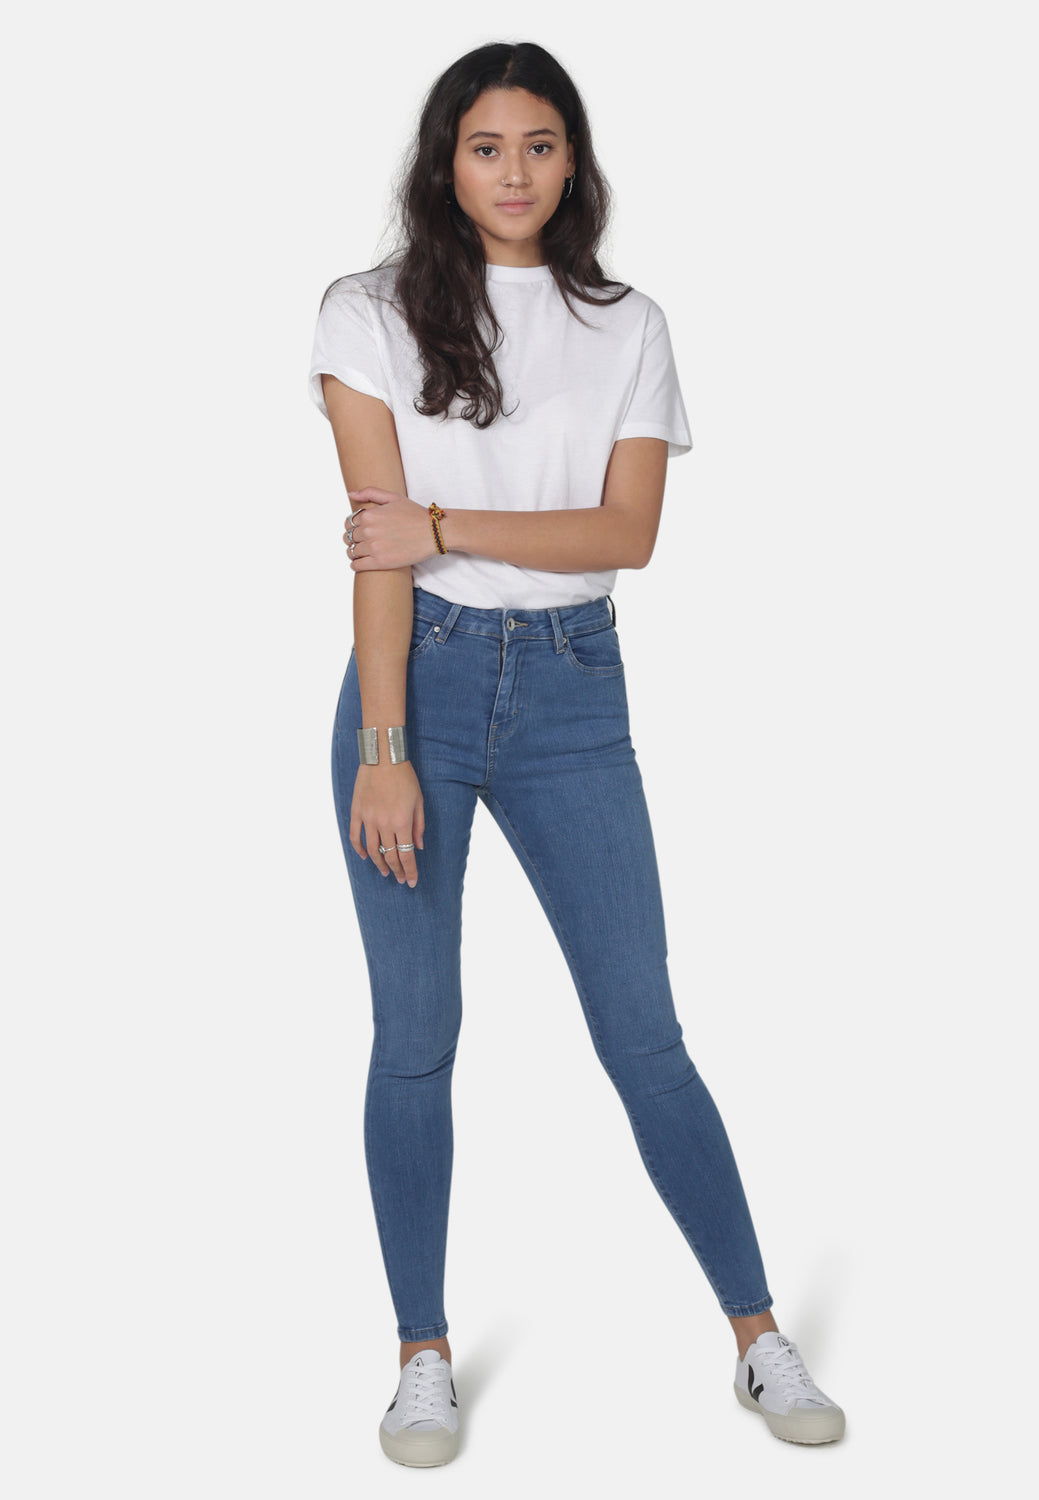 JANE // Organic Super Skinny High Waist Jeans in Mid Blue Eco Wash - Monkee Genes Organic Jeans Denim - Women's Super Skinny Monkee Genes Official  Monkee Genes Official